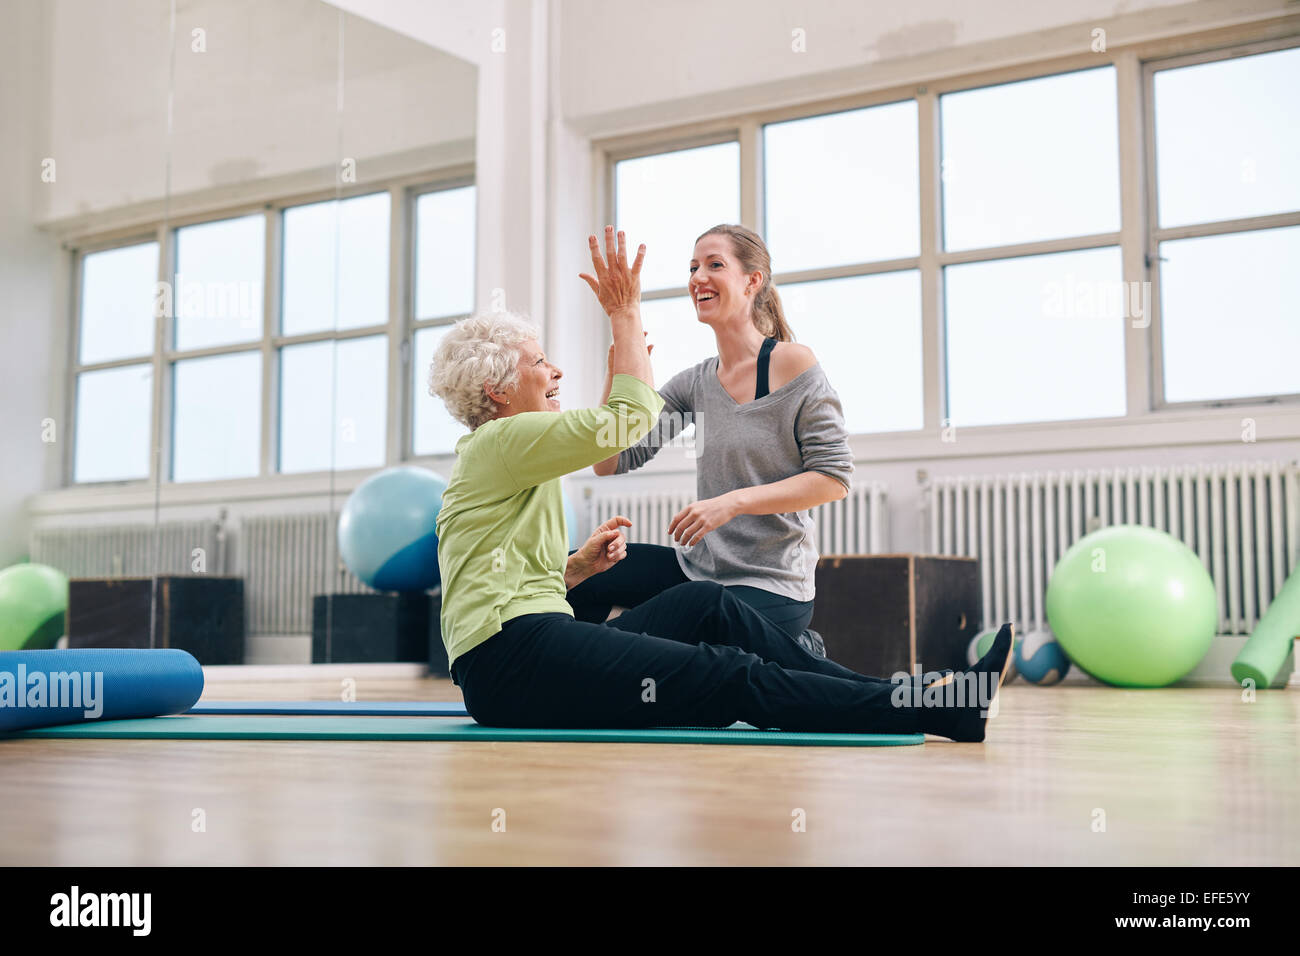 Senior woman giving high five to her personal trainer while sitting on fitness mat at gym. Happy elder woman rejoicing - Stock Image